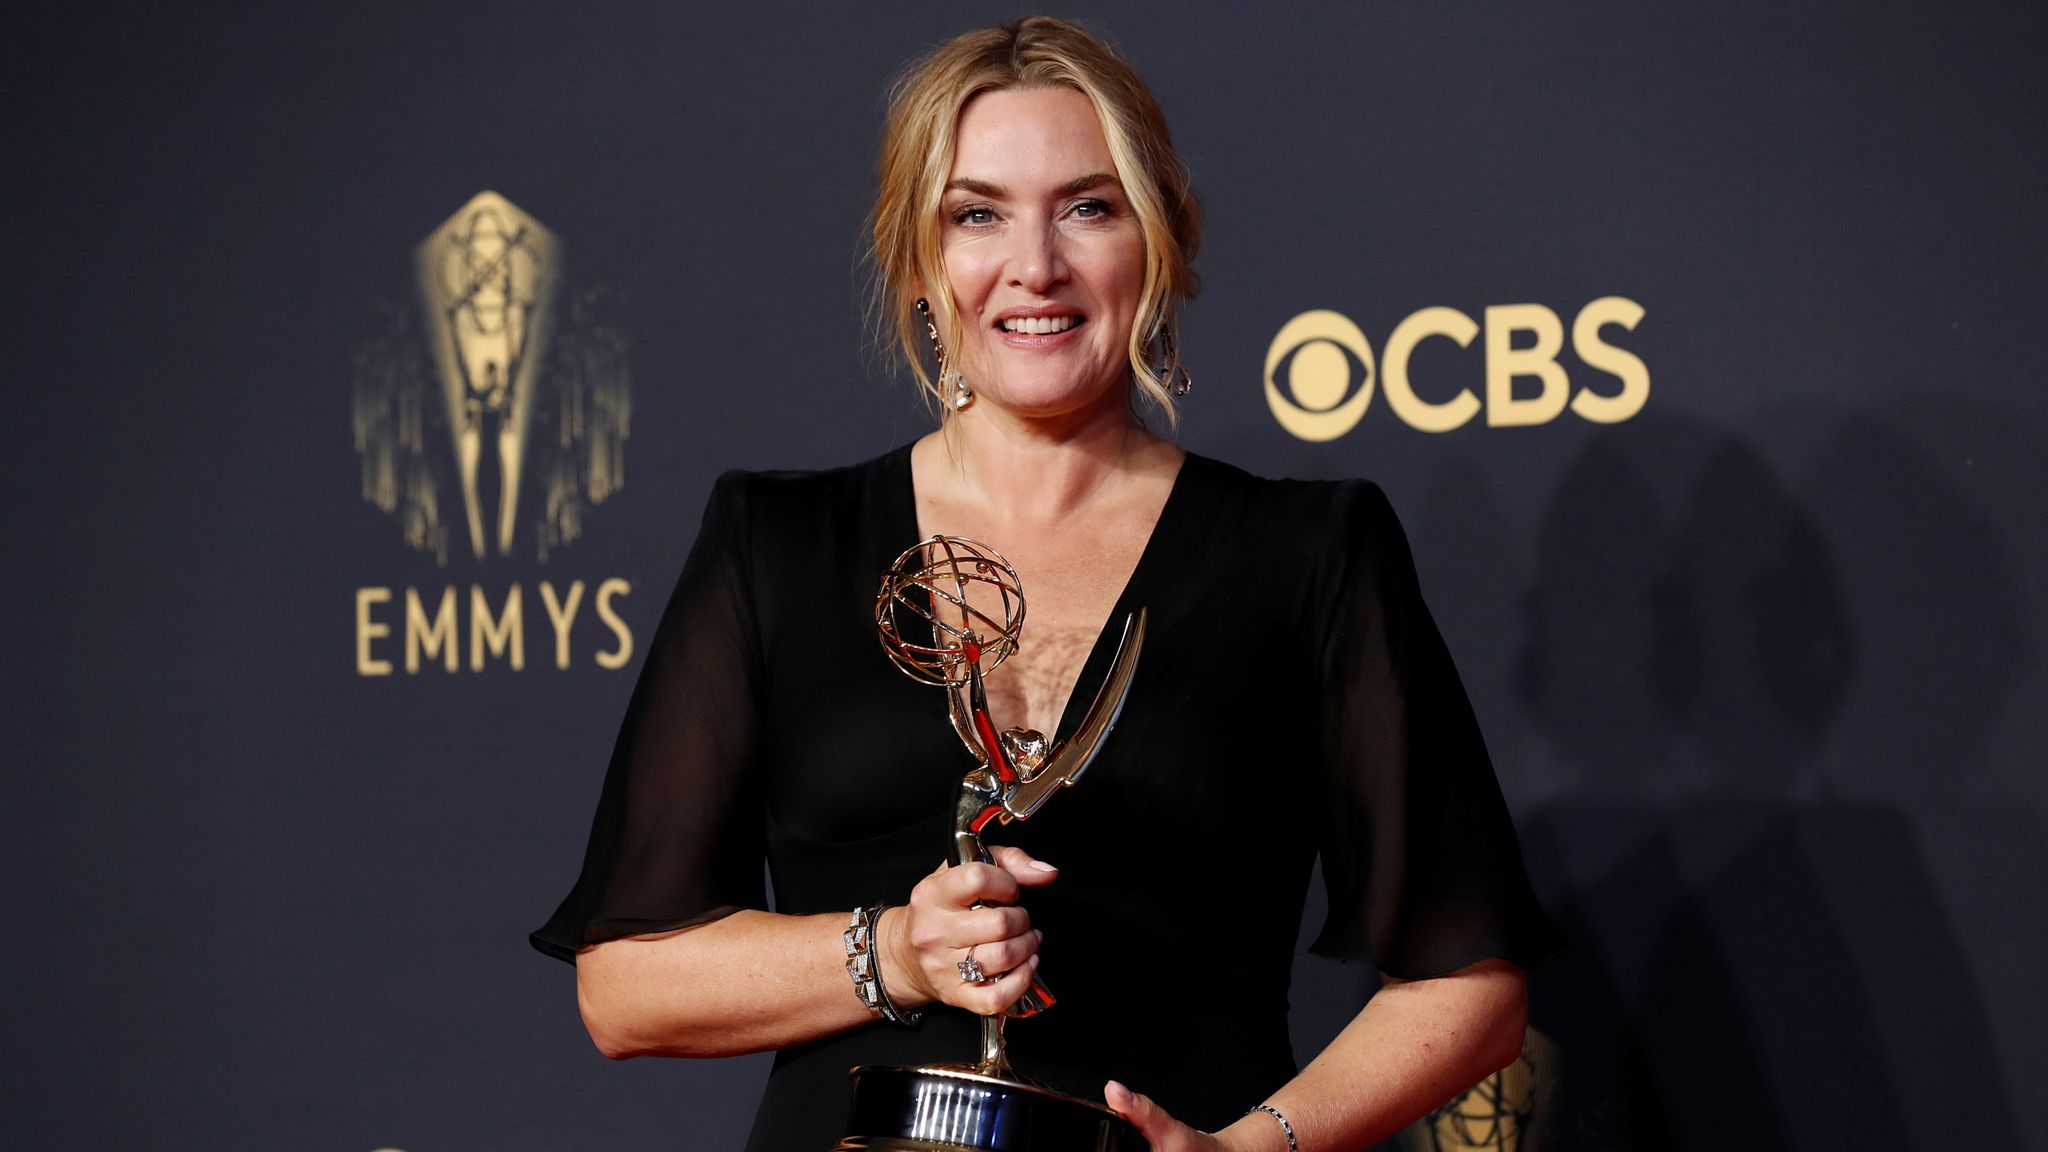 Kate Winslet was named outstanding lead actress in a limited or anthology series or movie, for Mare Of Easttown, at the 2021 Emmy Awards